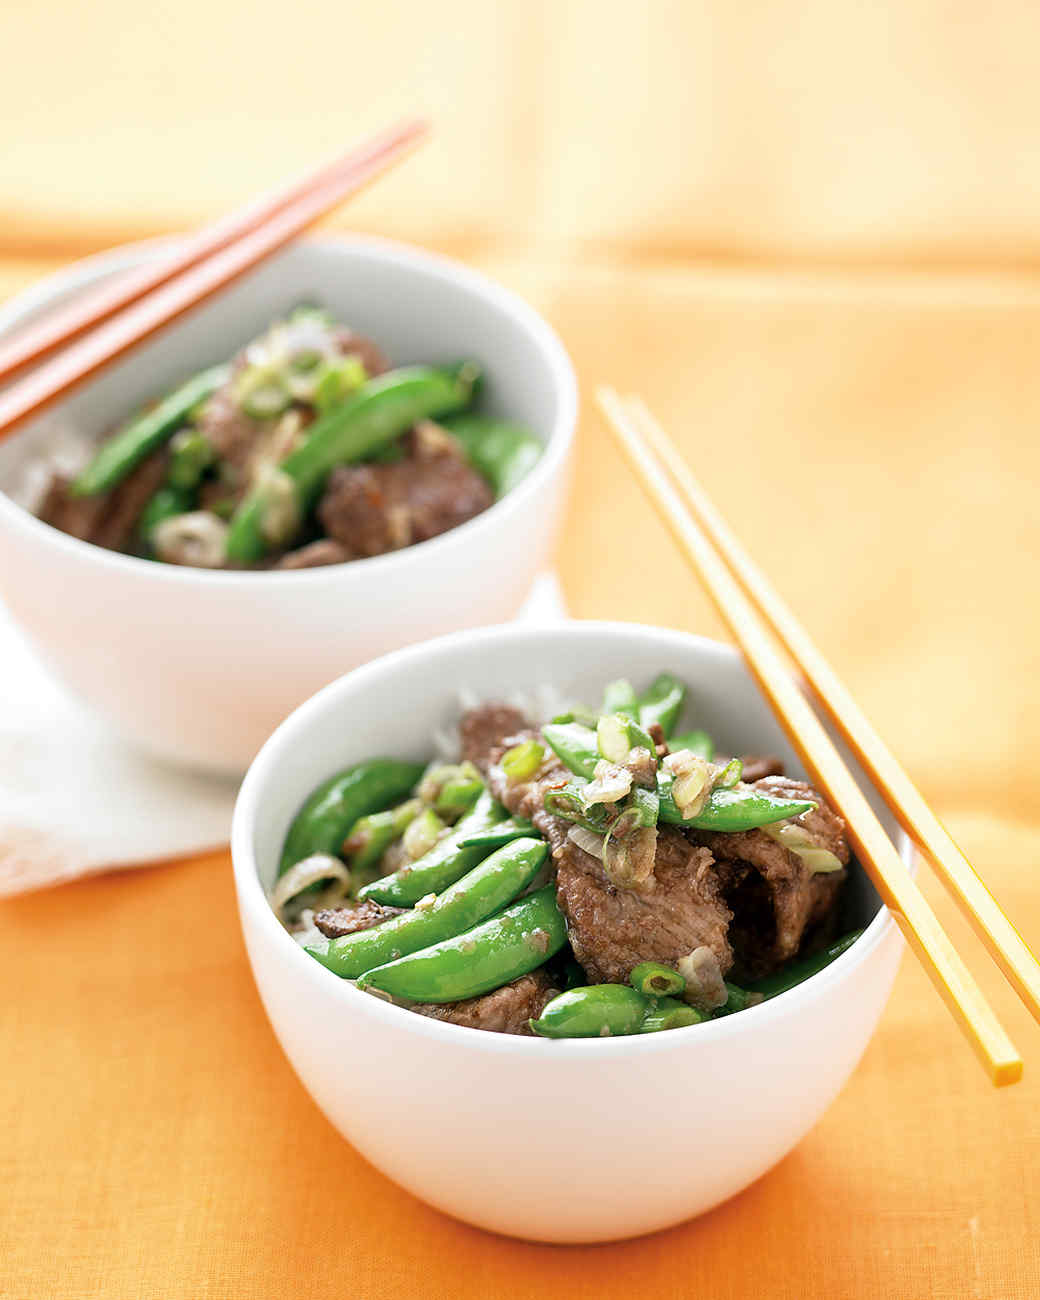 Beef Stir-Fry with Snap Peas